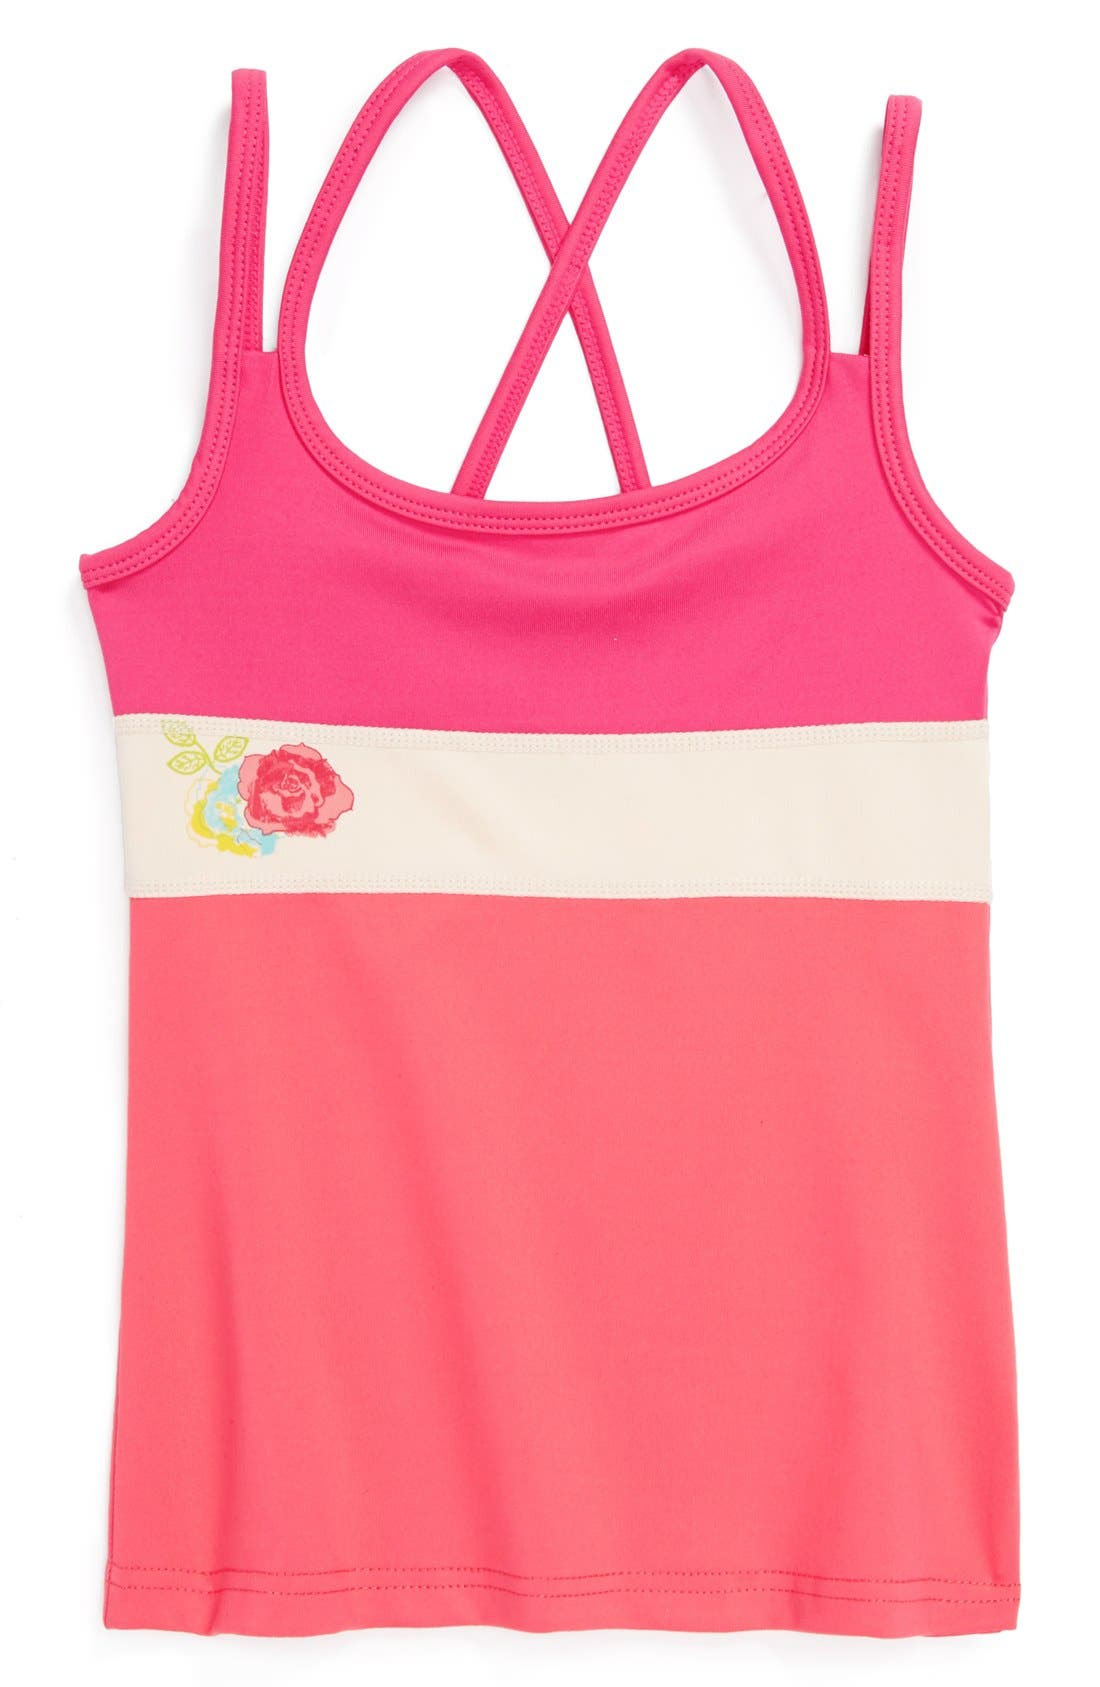 Alternate Image 1 Selected - Limeapple Cross Back Tank Top (Little Girls & Big Girls)